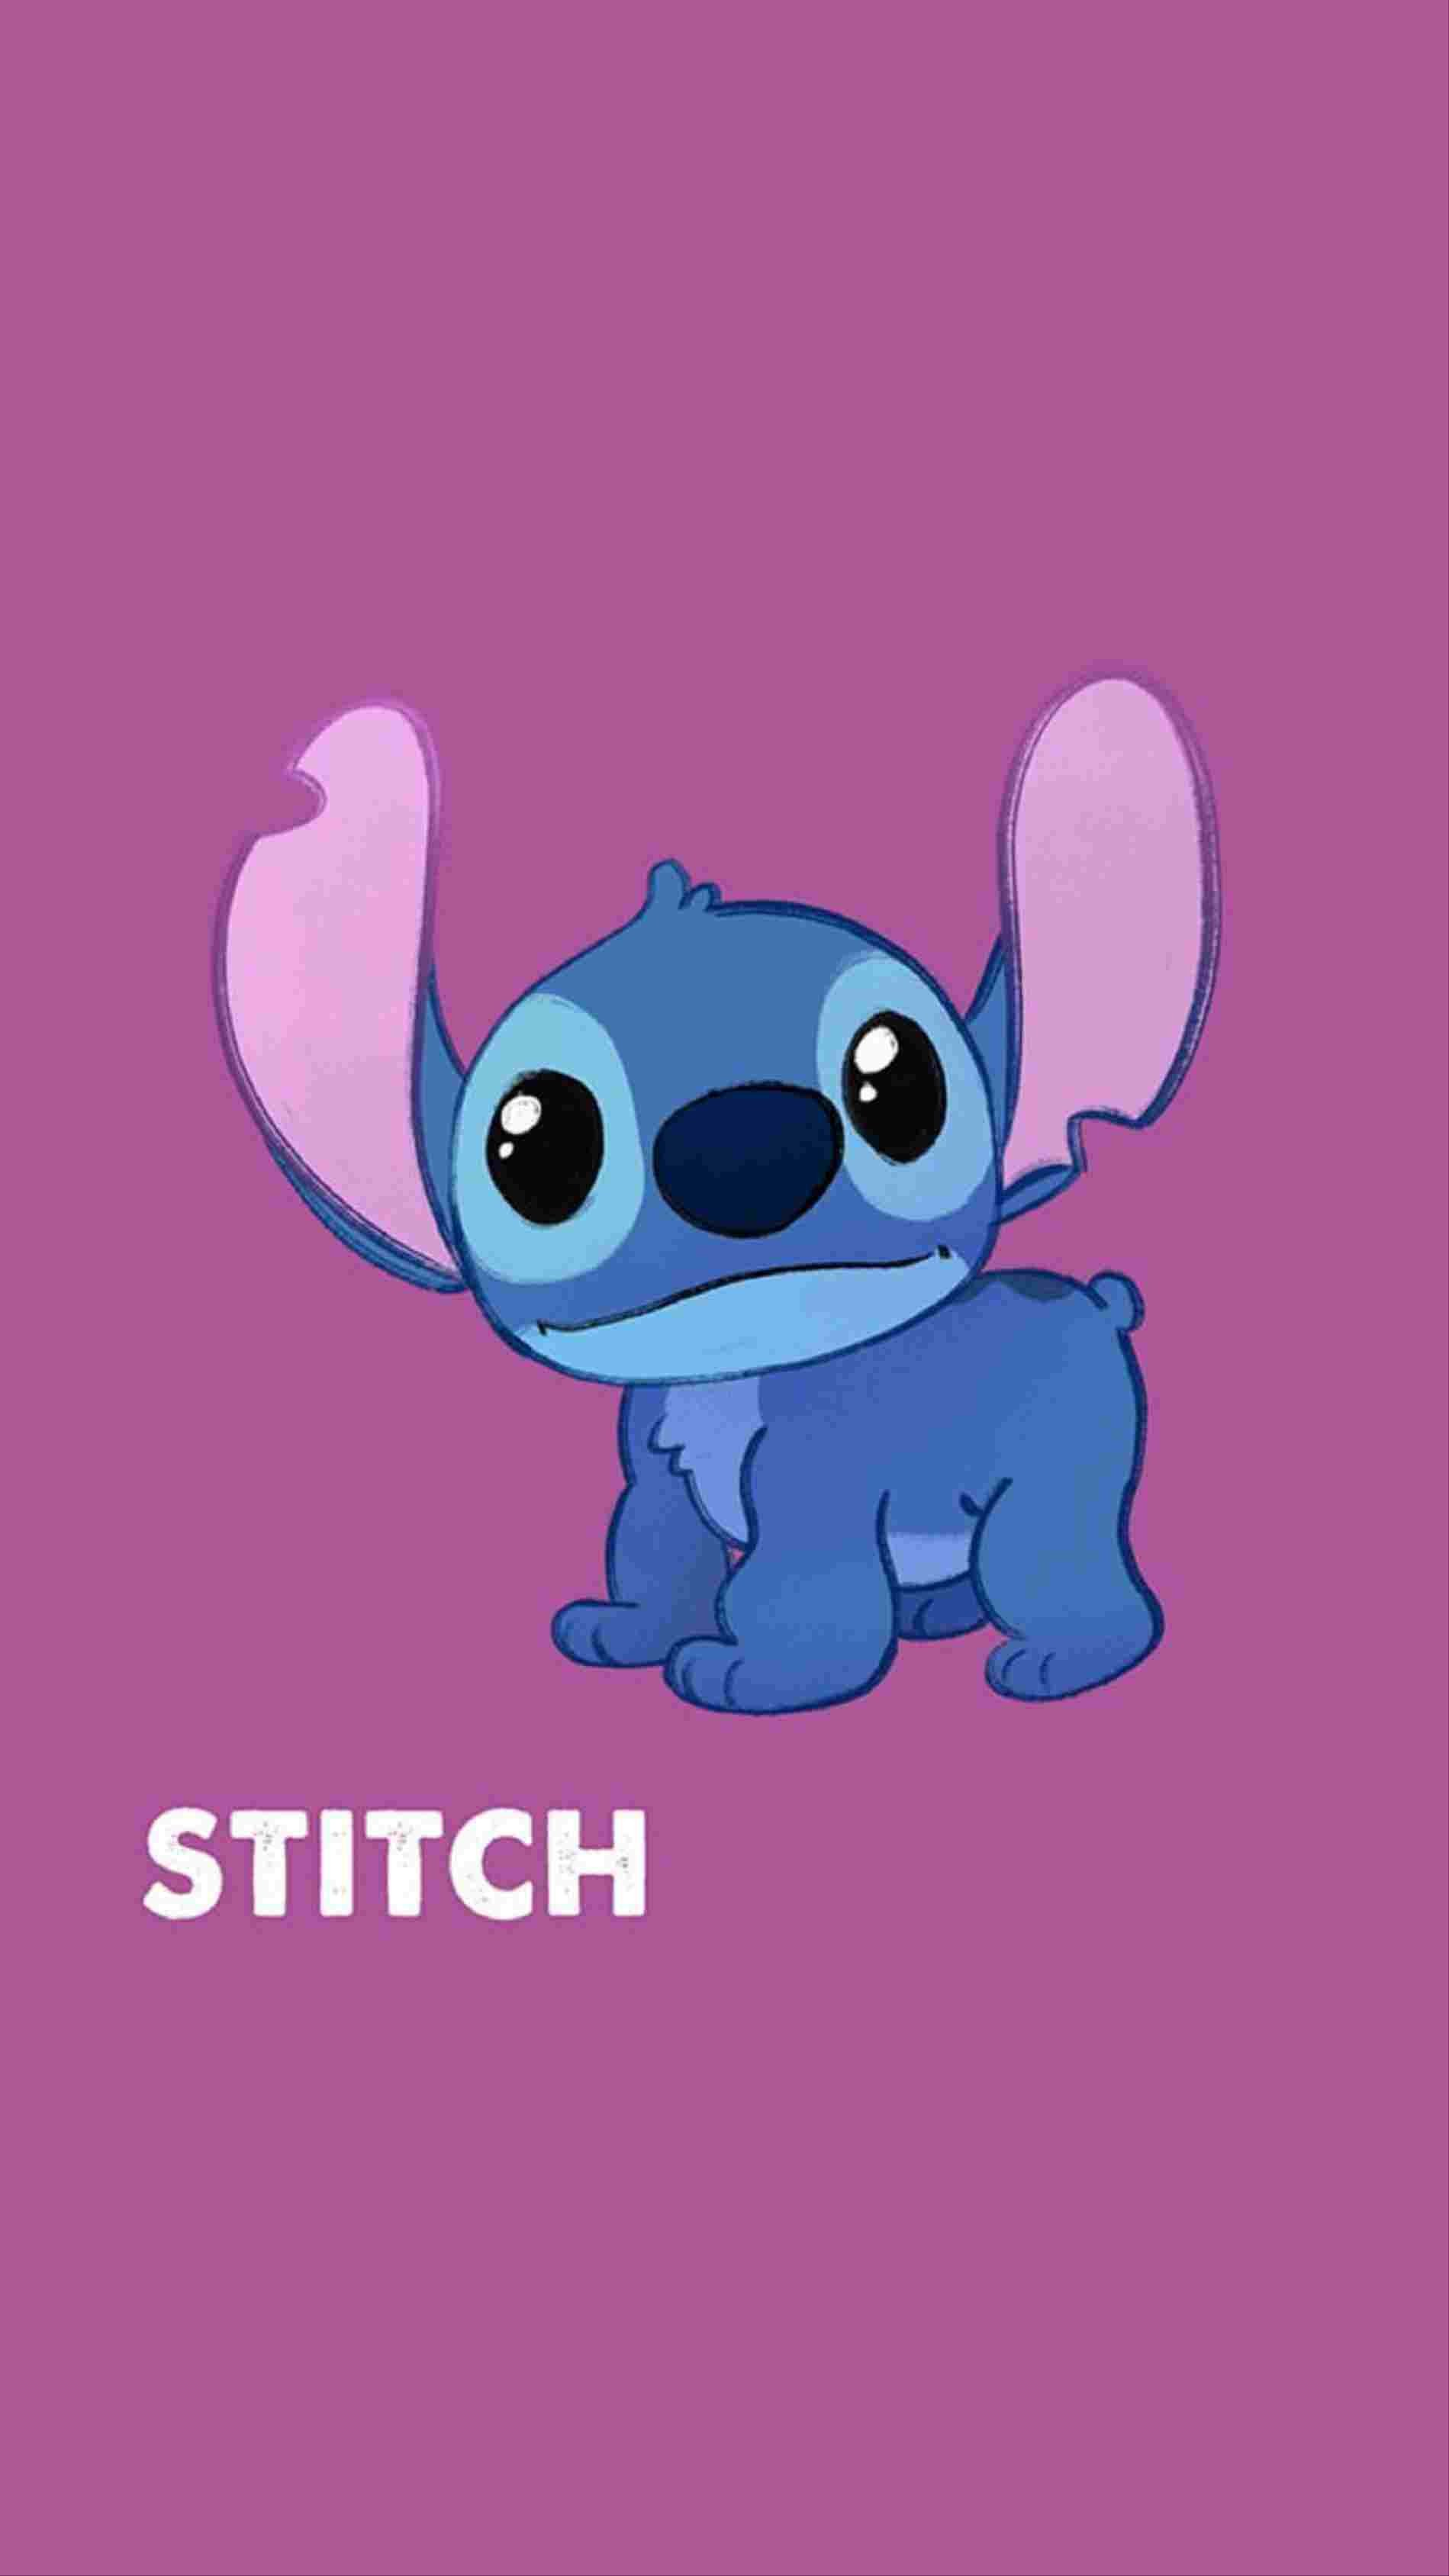 1417059 most popular stitch wallpapers 1899x3377 for ios